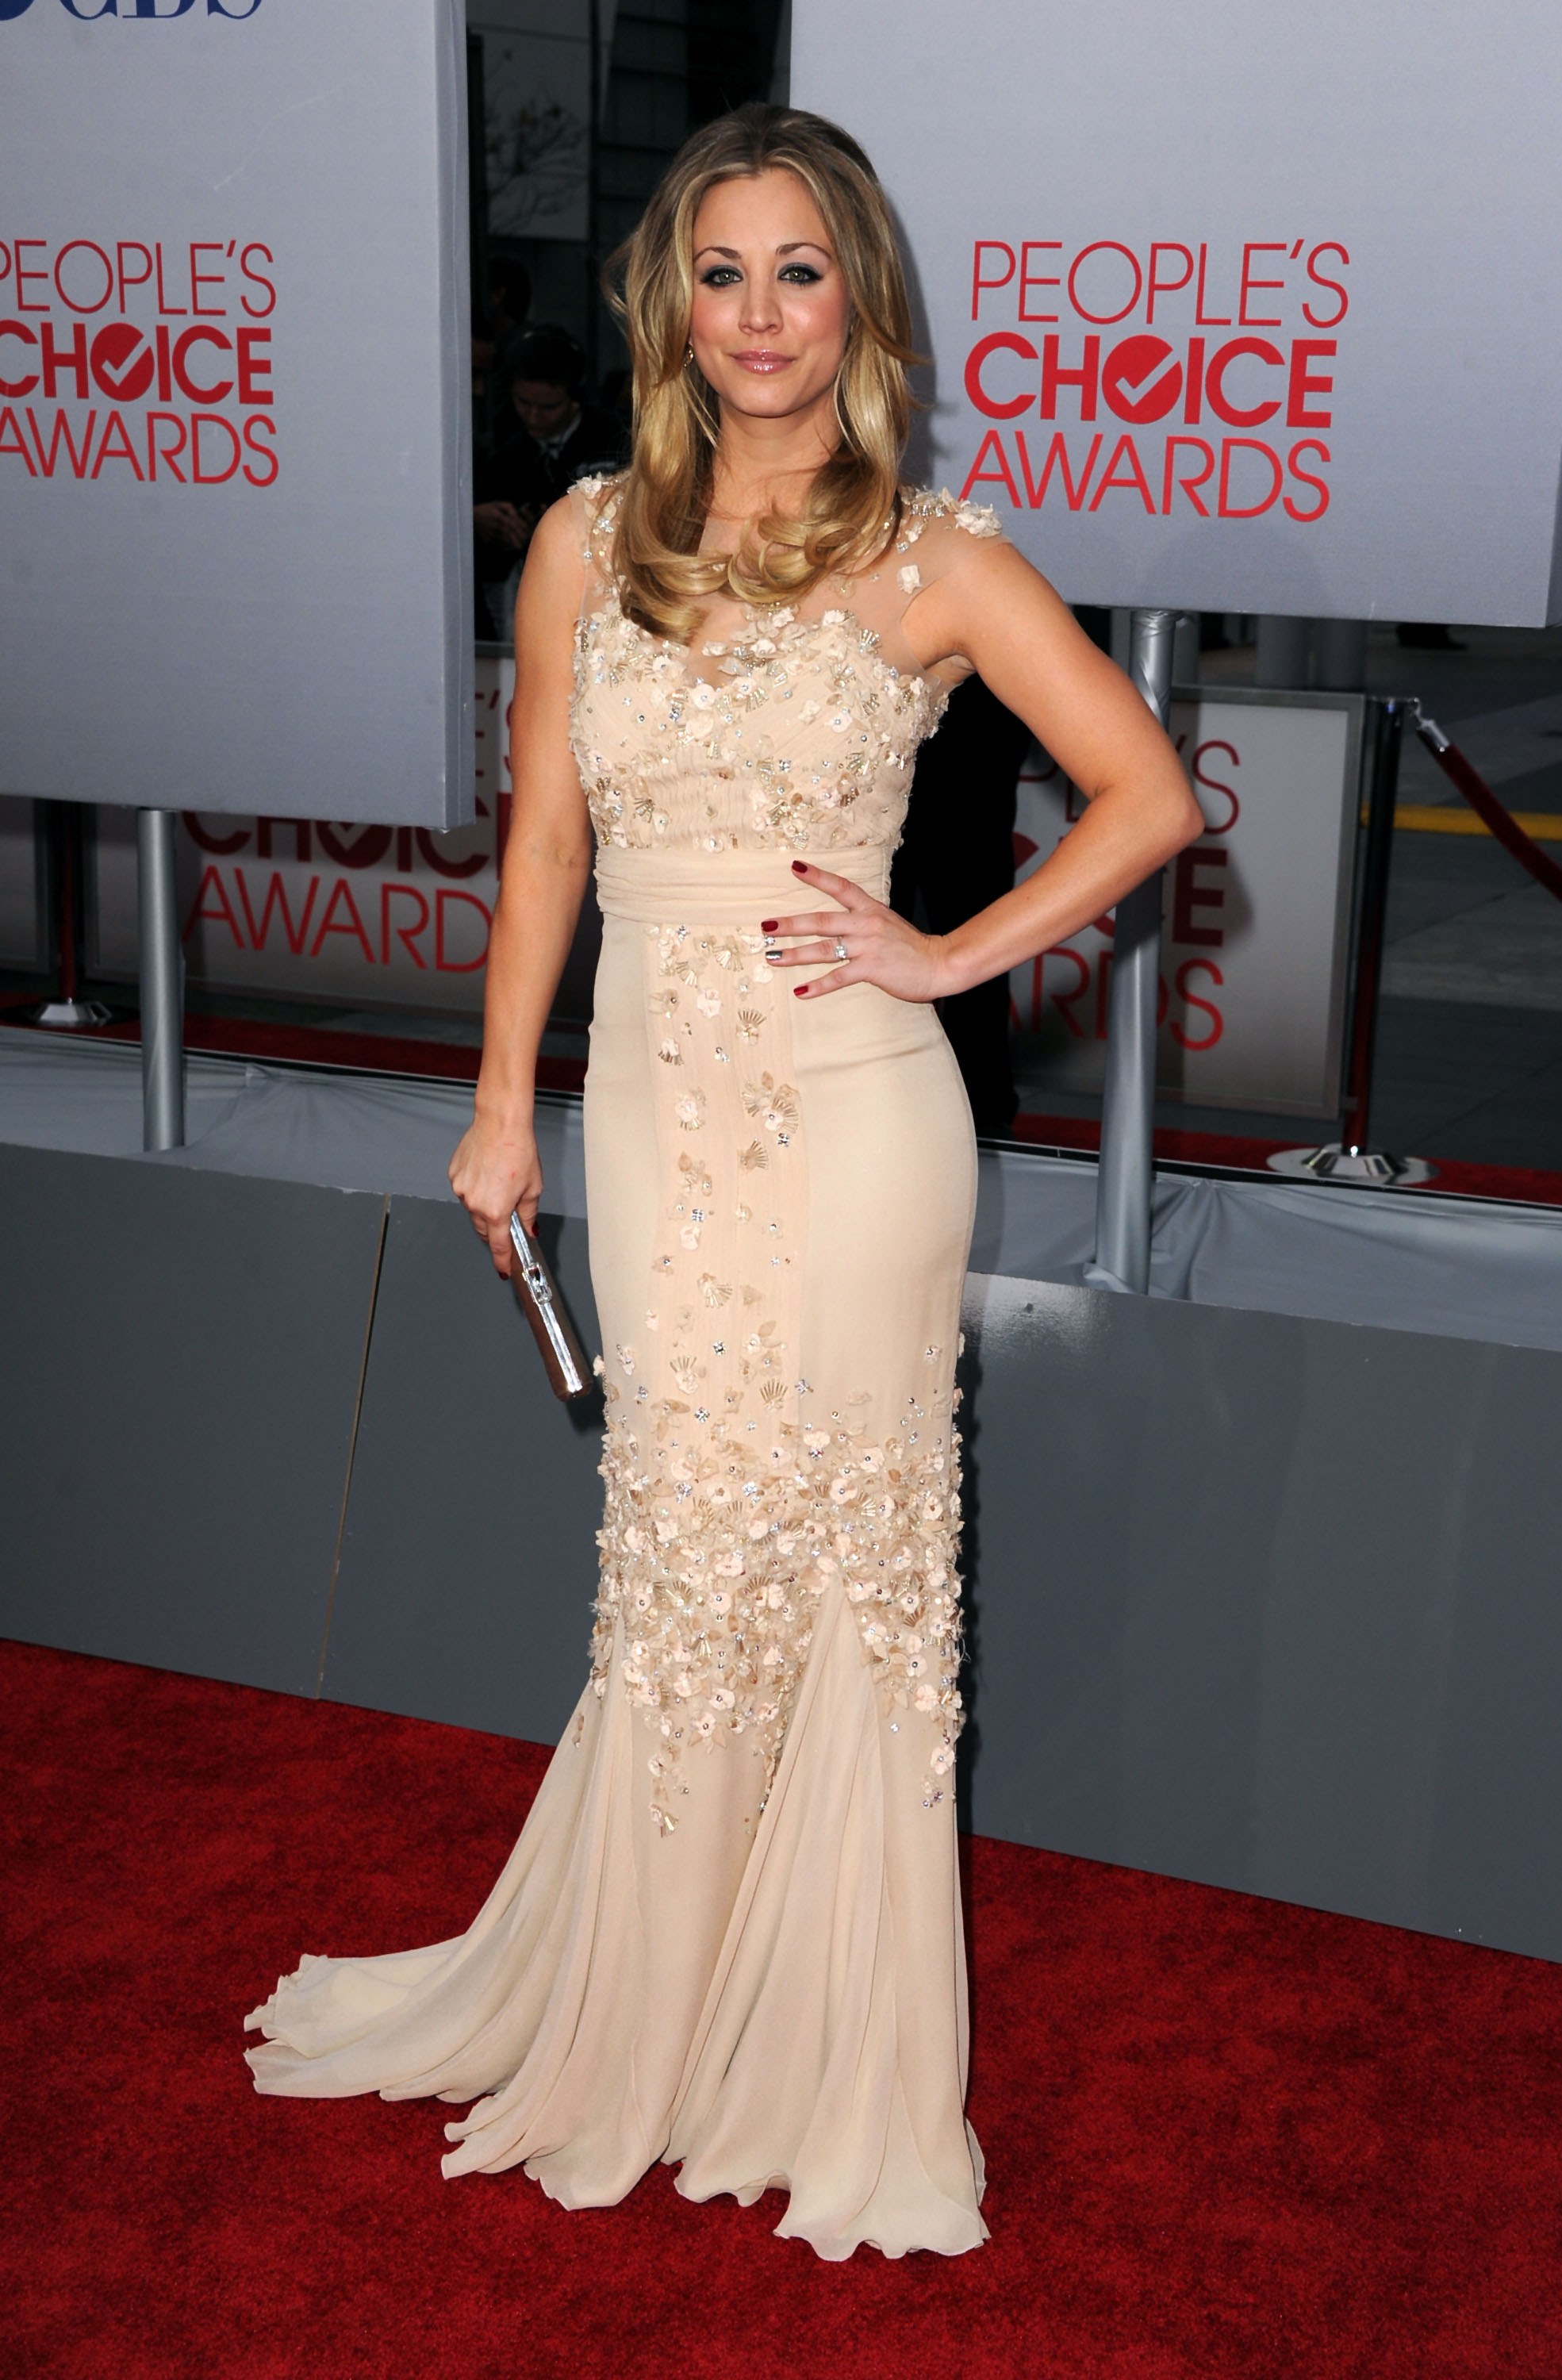 2012 People's Choice Awards host Kaley Cuoco on the red carpet .